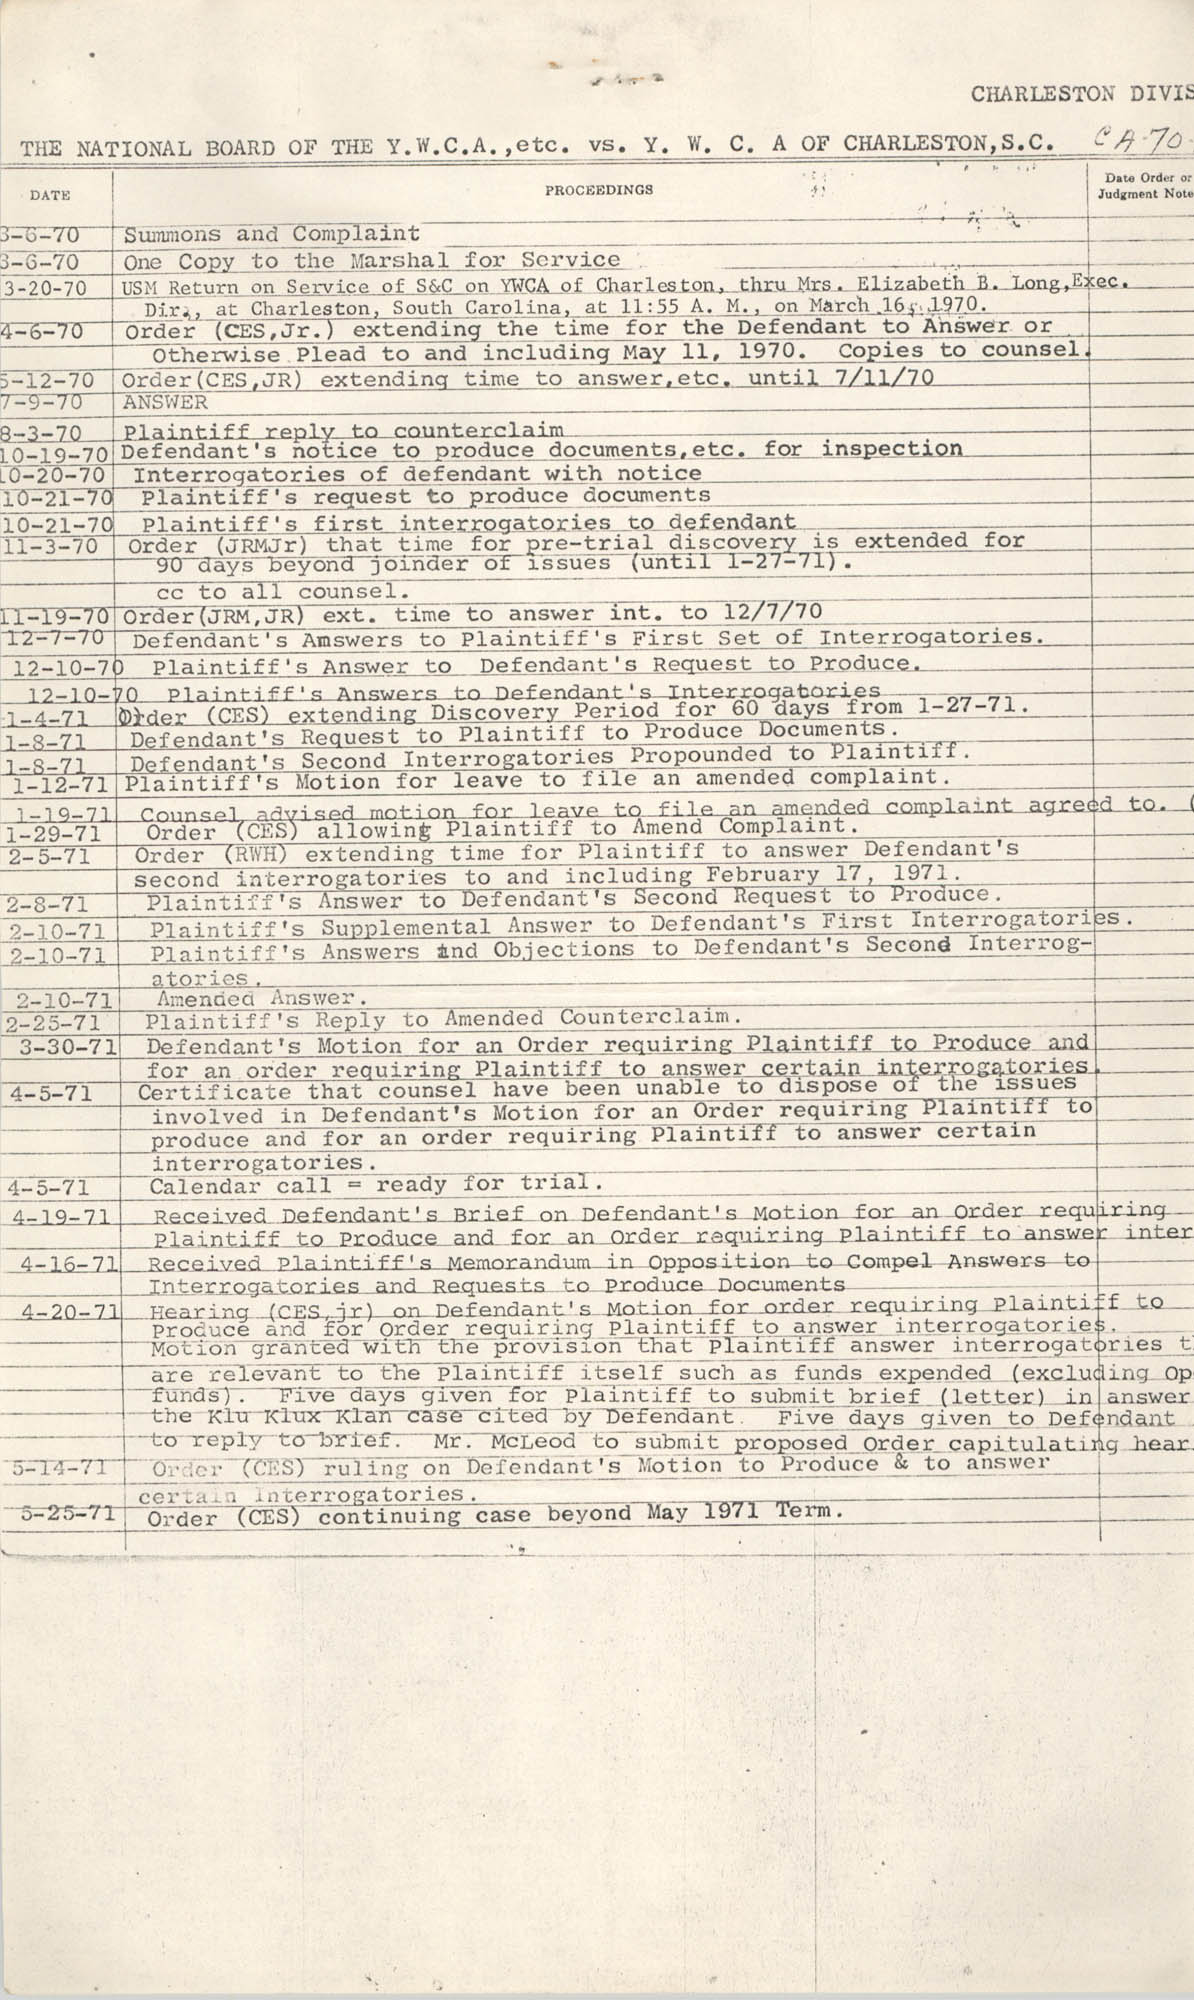 Index to Appeal Record, National Board of the Y.W.C.A. of U.S.A. vs. Y.W.C.A. of Charleston, S. C., Civil Action No. 70-180, Proceedings List, Page 1